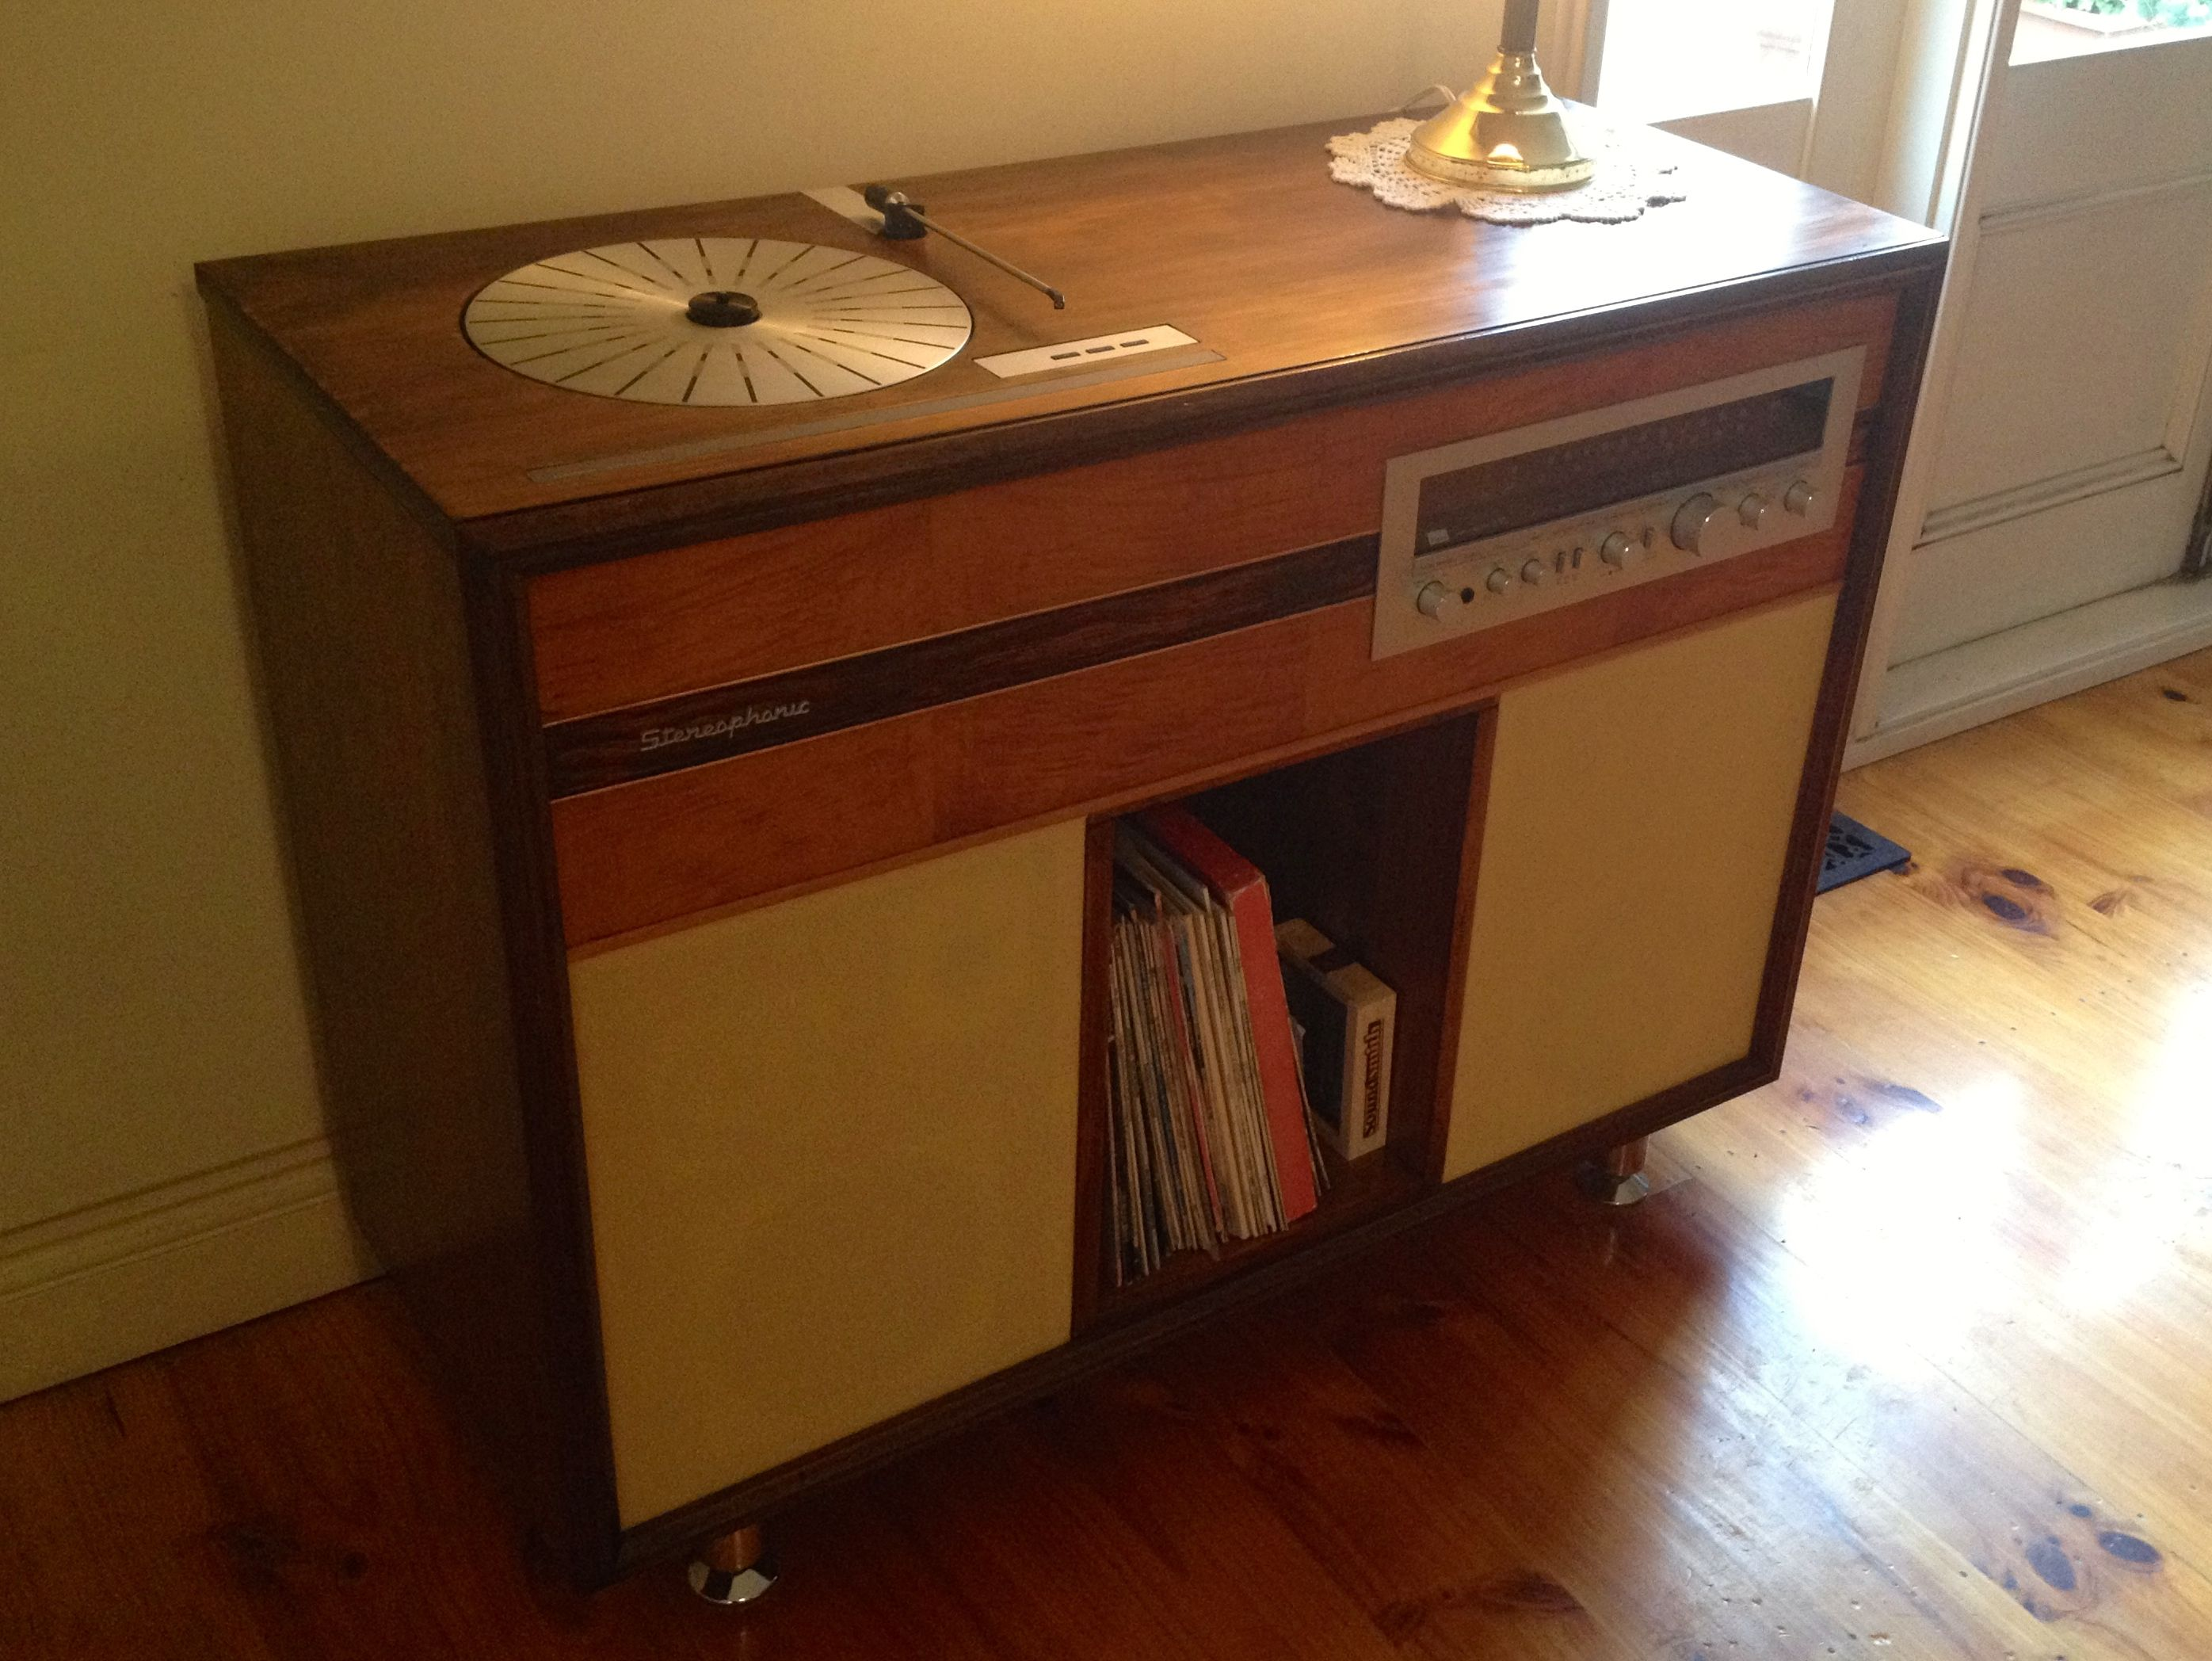 17 Best images about Vintage HiFi on Pinterest | Turntable, George nelson  and Record player